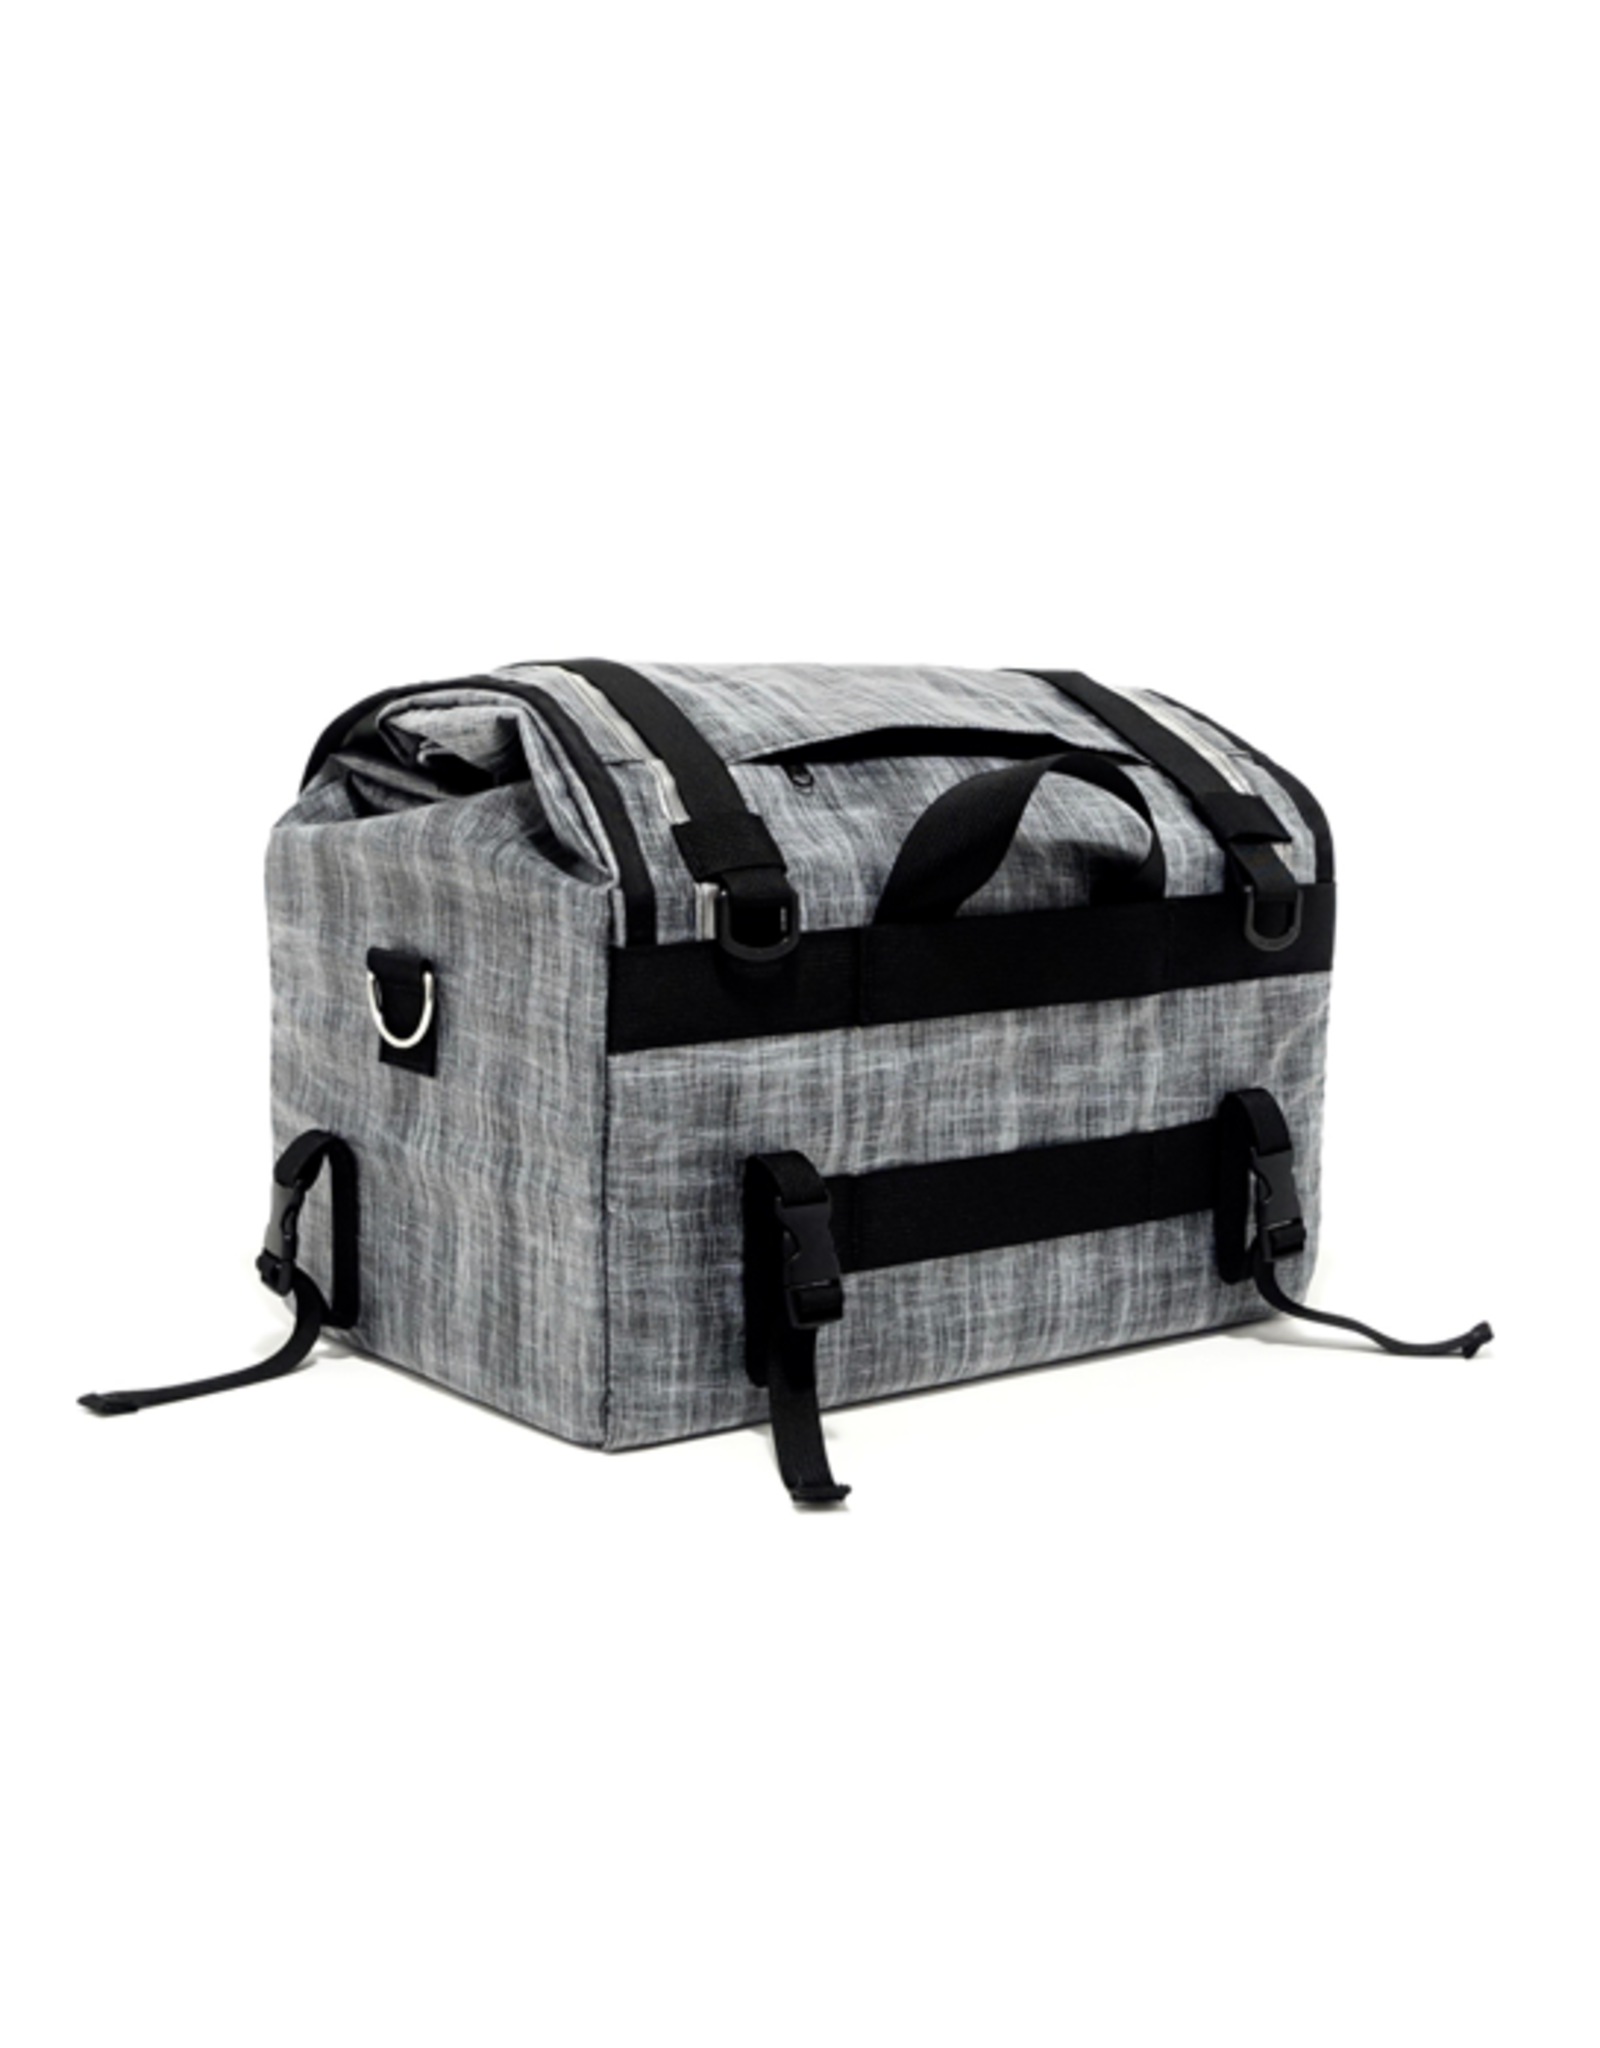 Swift Industries Swift Industries Polaris Porteur Bag